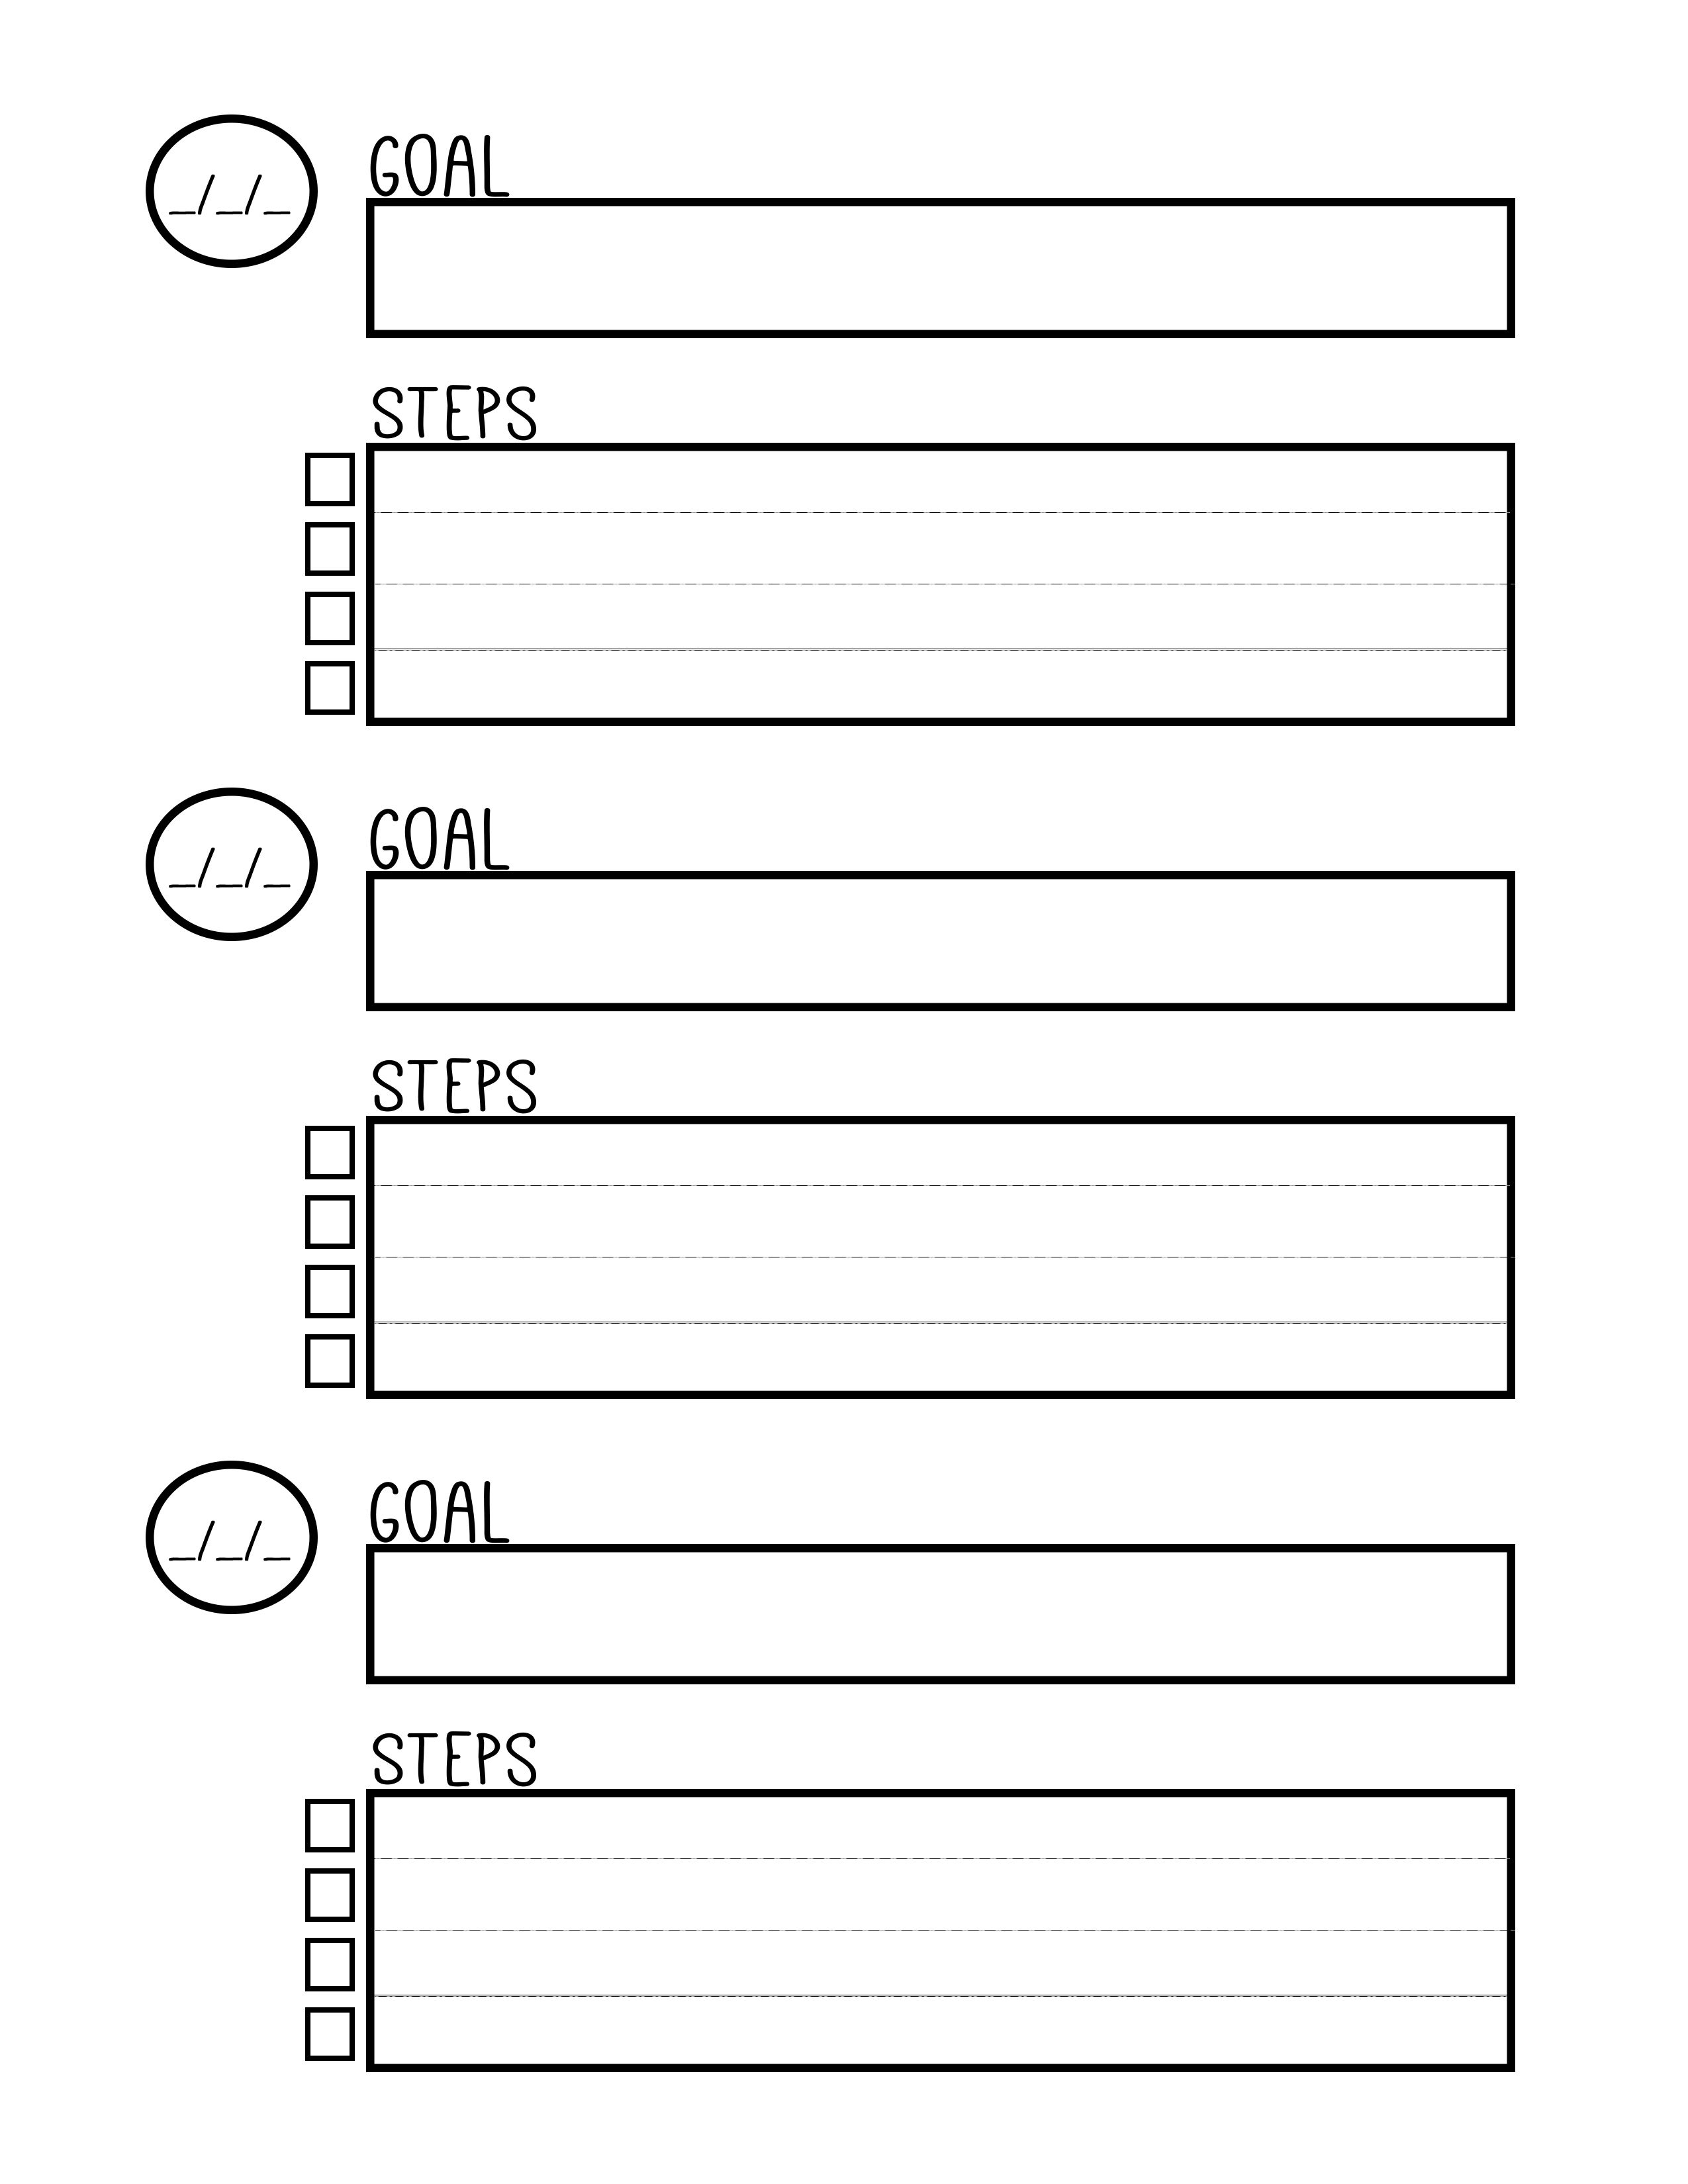 Ridiculous image intended for printable goal sheets pdf